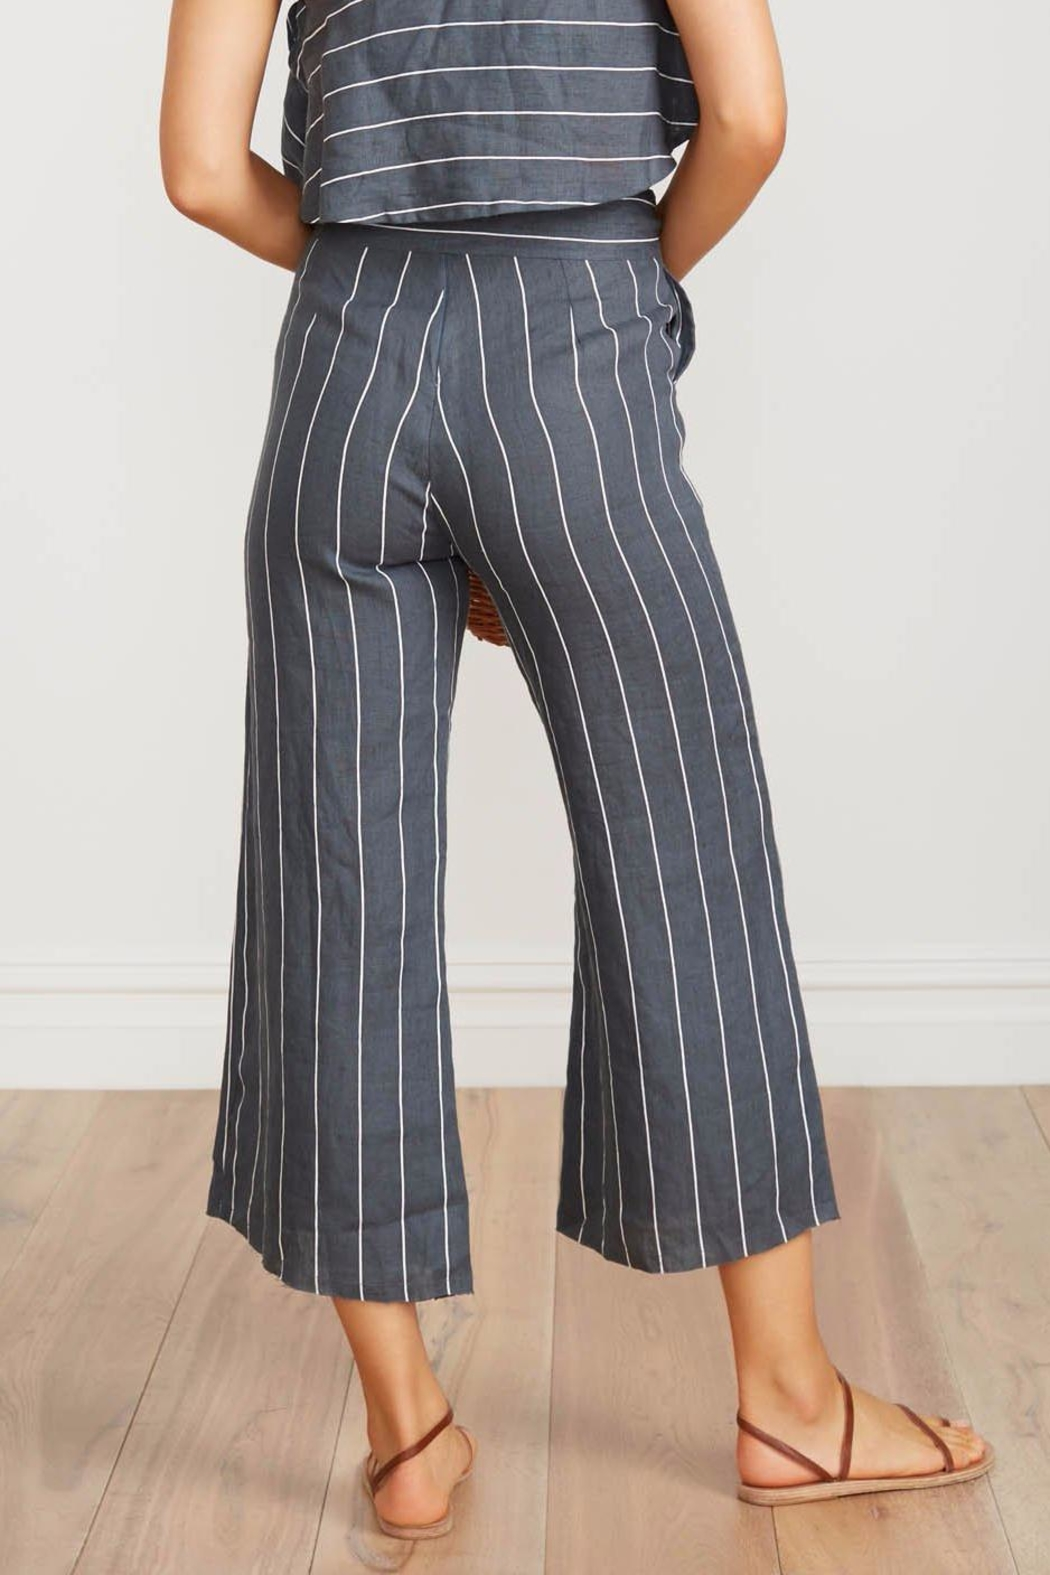 Faithfull The Brand Striped Linen Culottes - Back Cropped Image